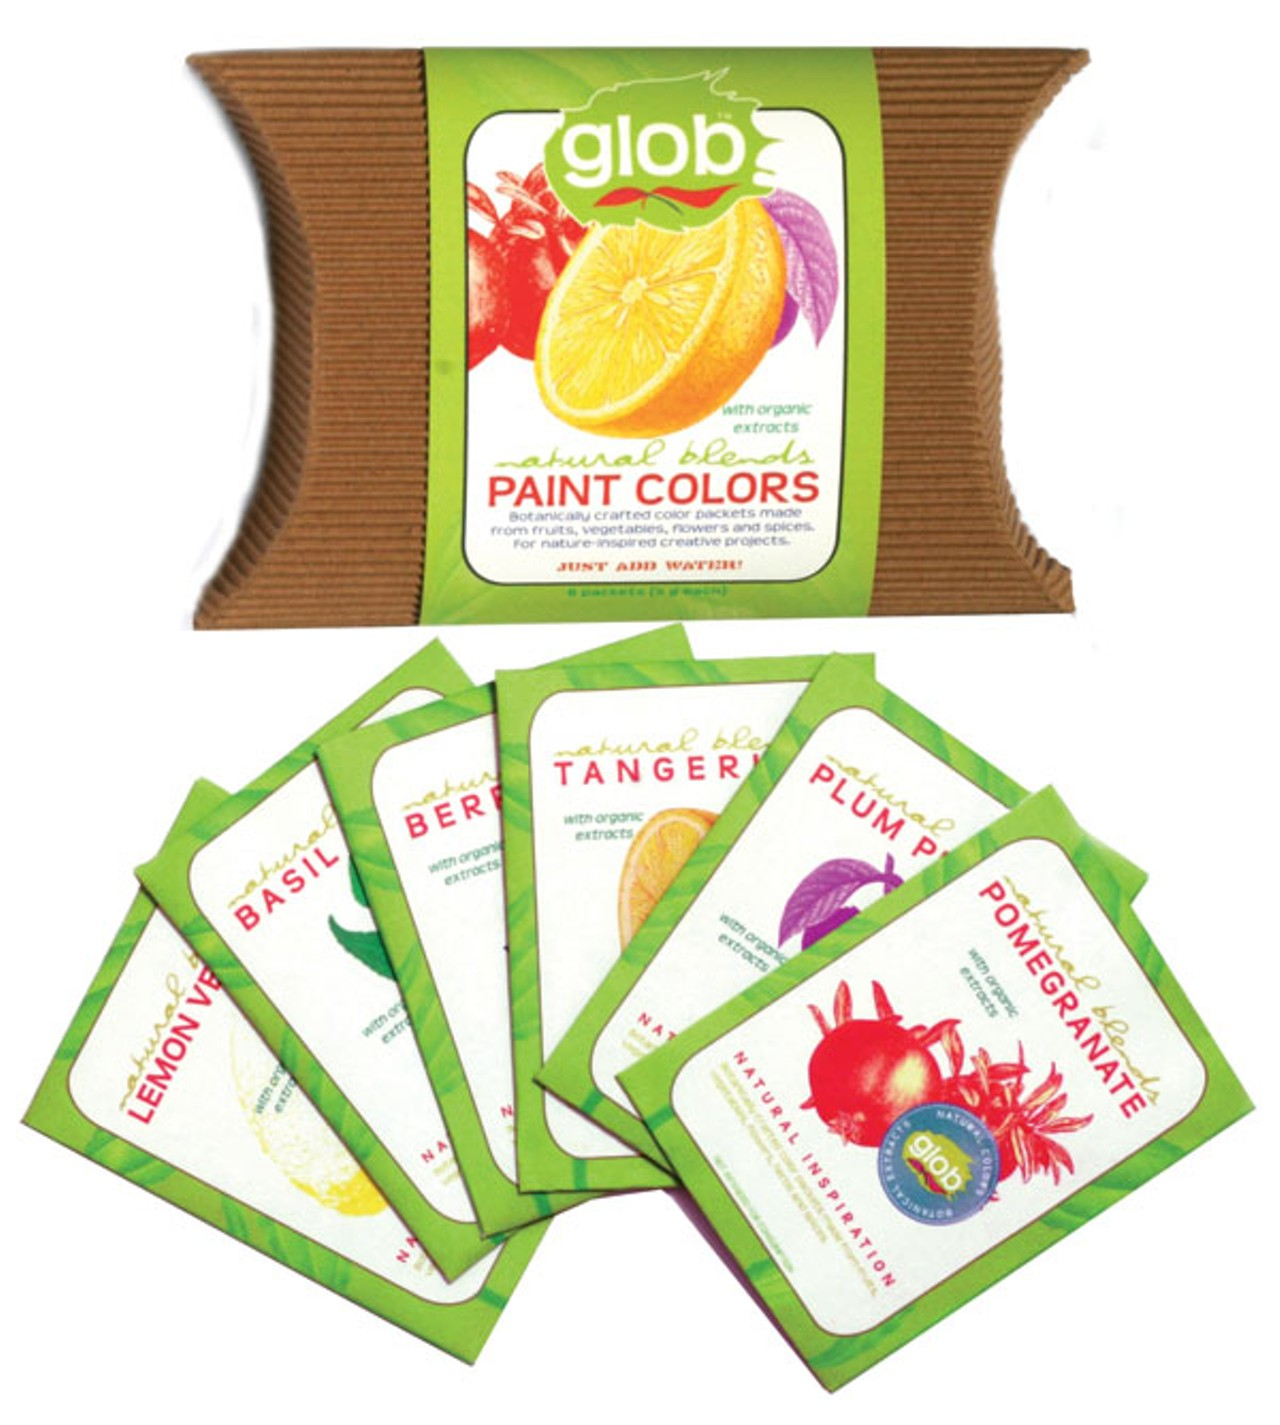 Glob Natural Paints Are Green Enough To Eat East Bay Express